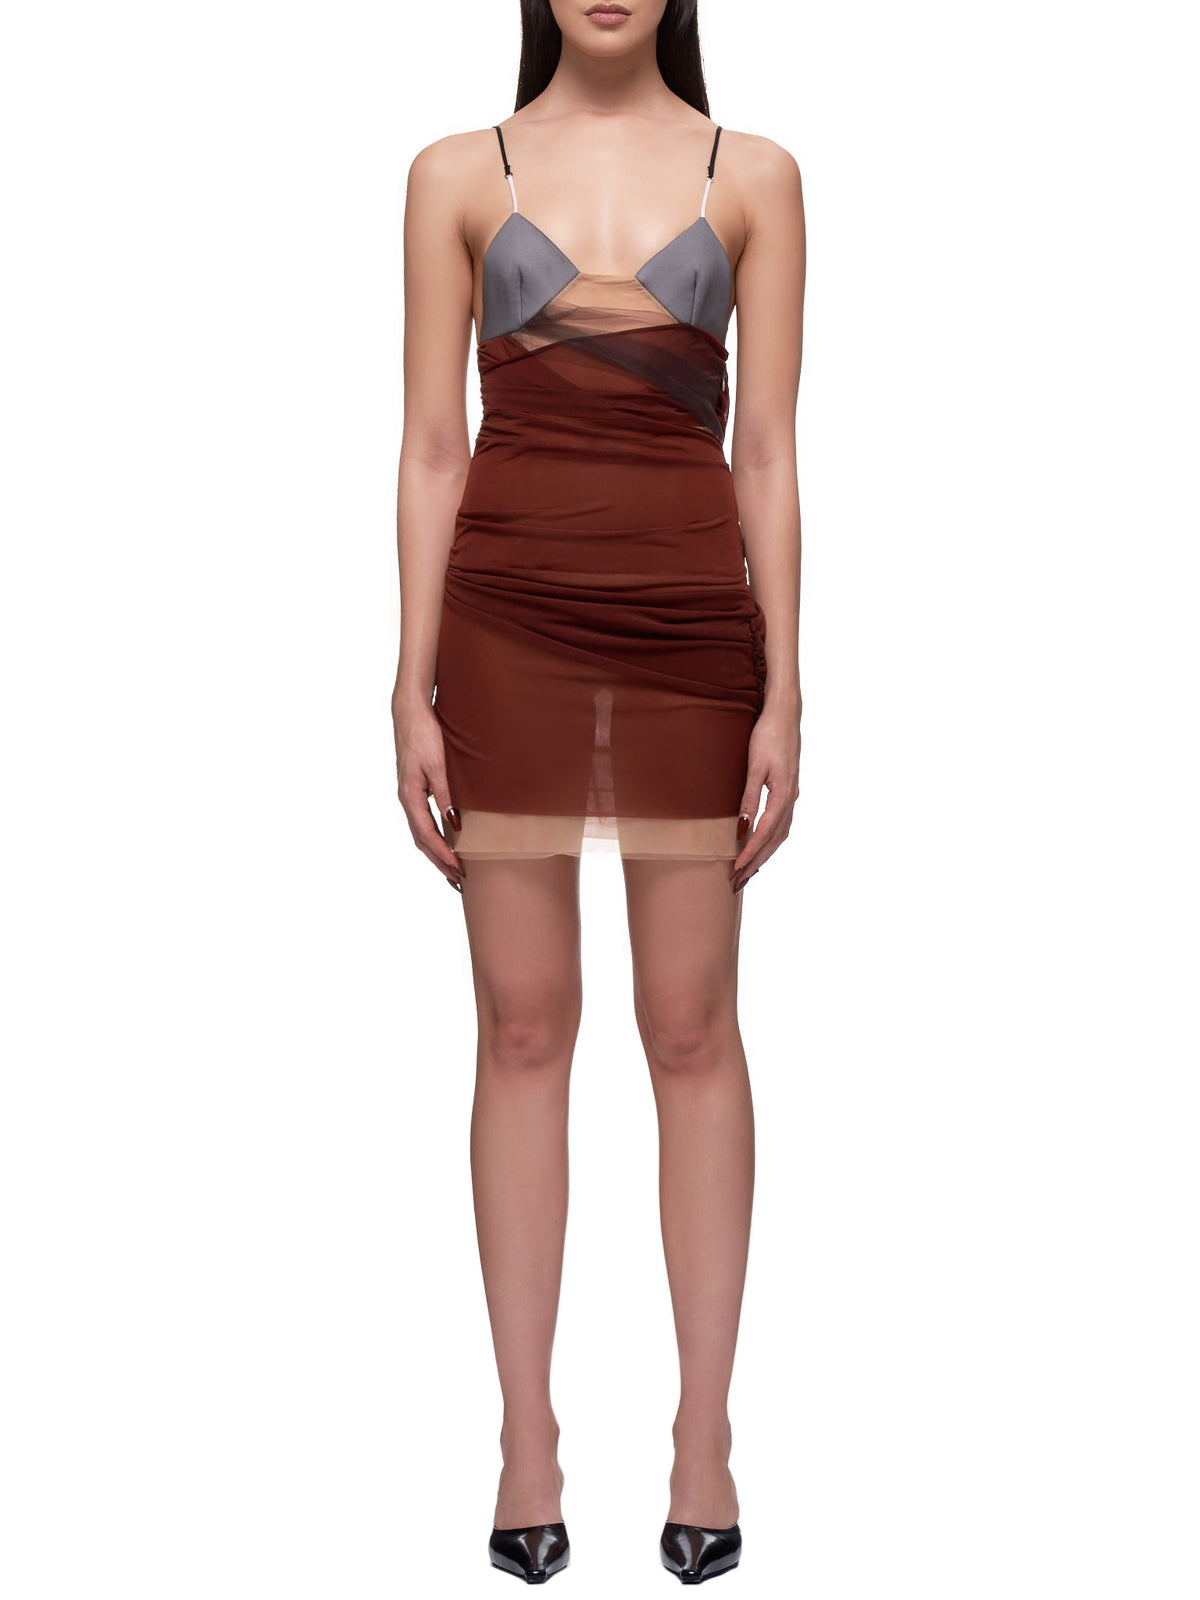 Evening Slip Dress (0004-BLACK-BROWN-NUDE)